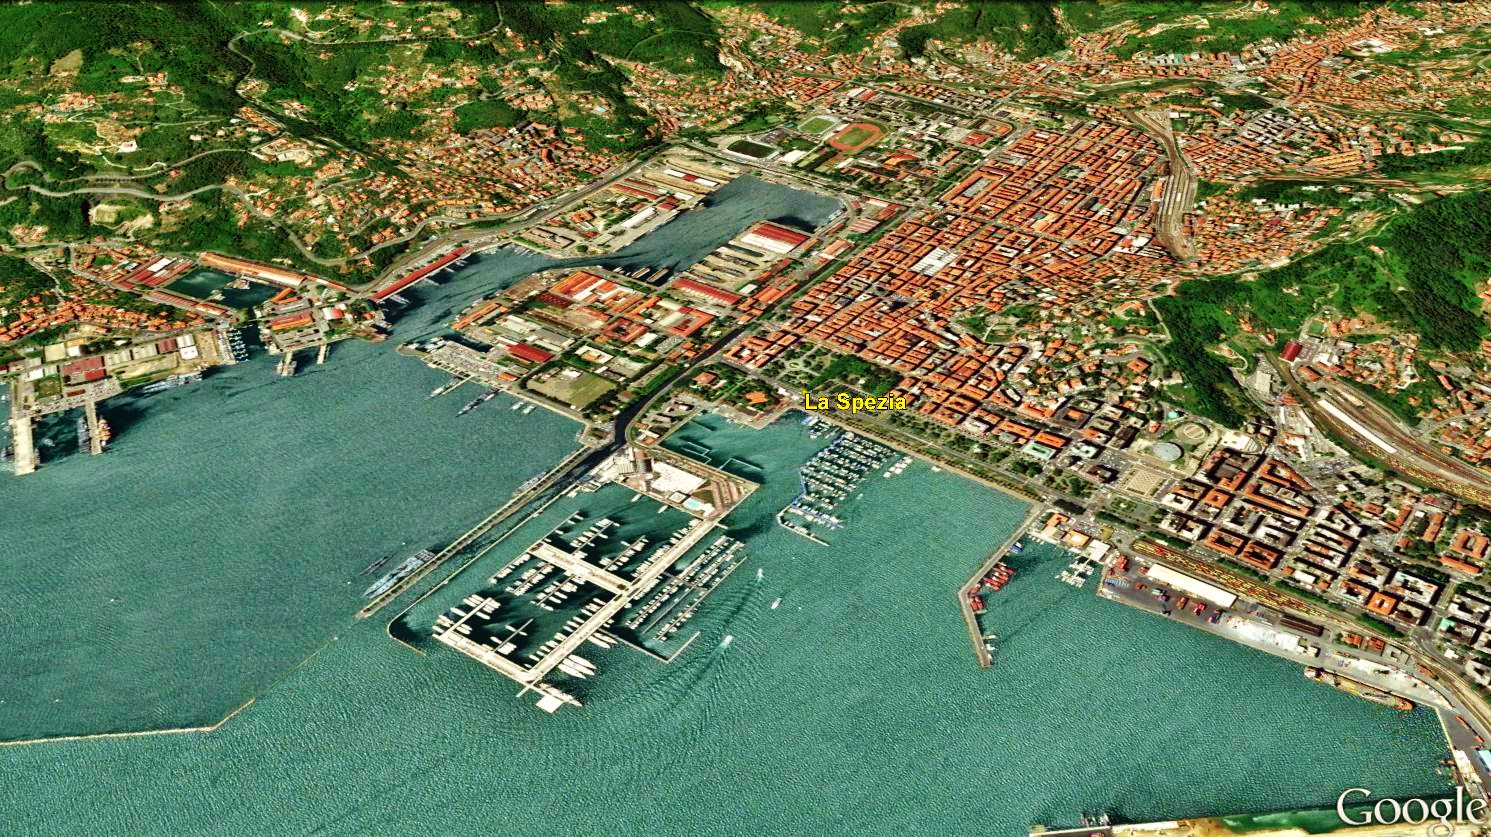 La Spezia Map 5 Google Earth martincooneycom